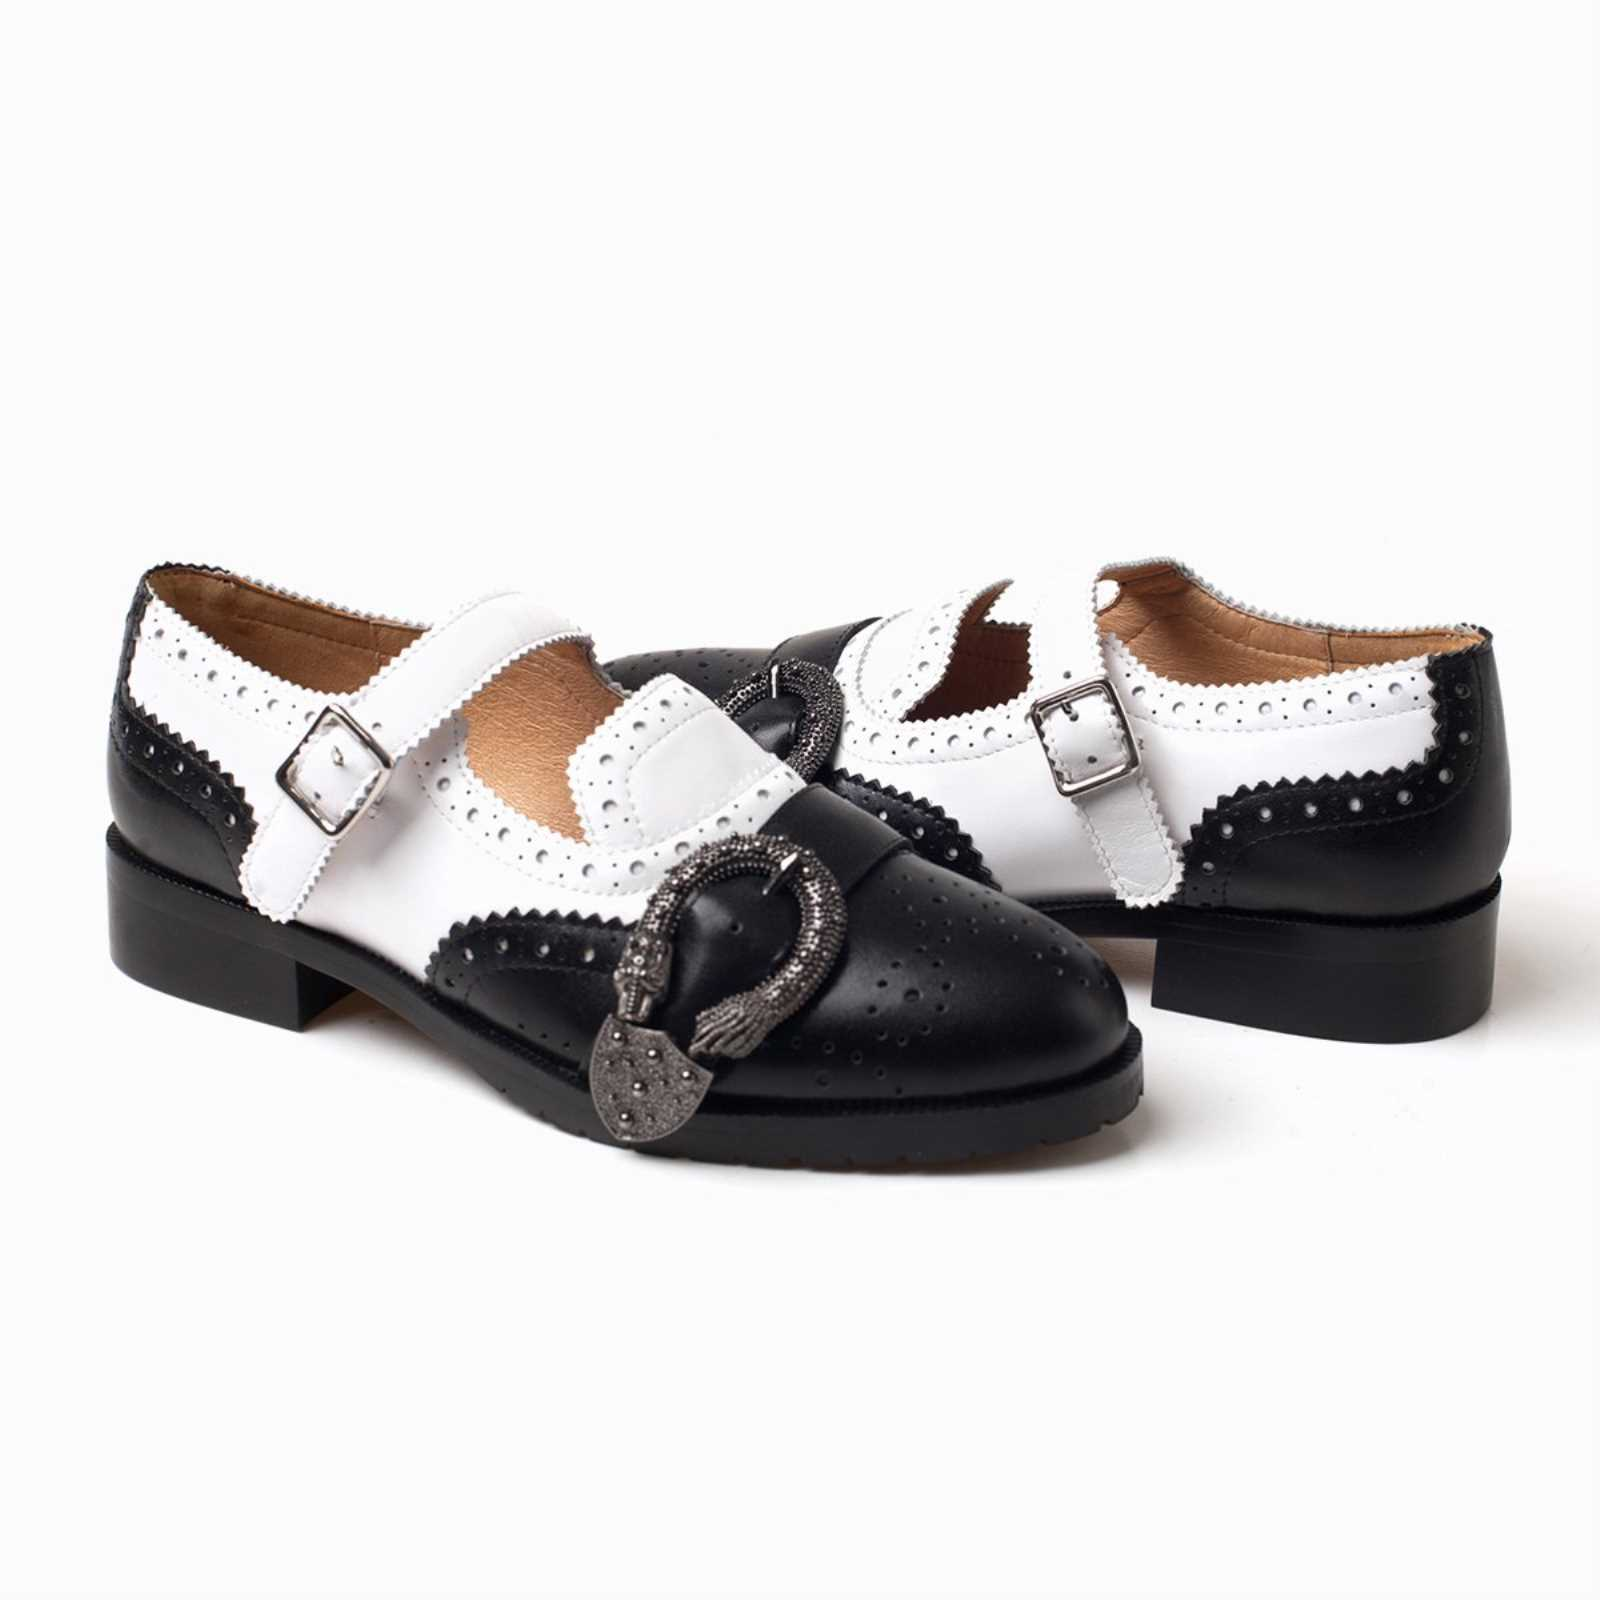 Details about UGG OZWEAR LADIES MILA BROGUE MONK CLASSIC SHOES BROGUE TWO TONE STYLE OB329